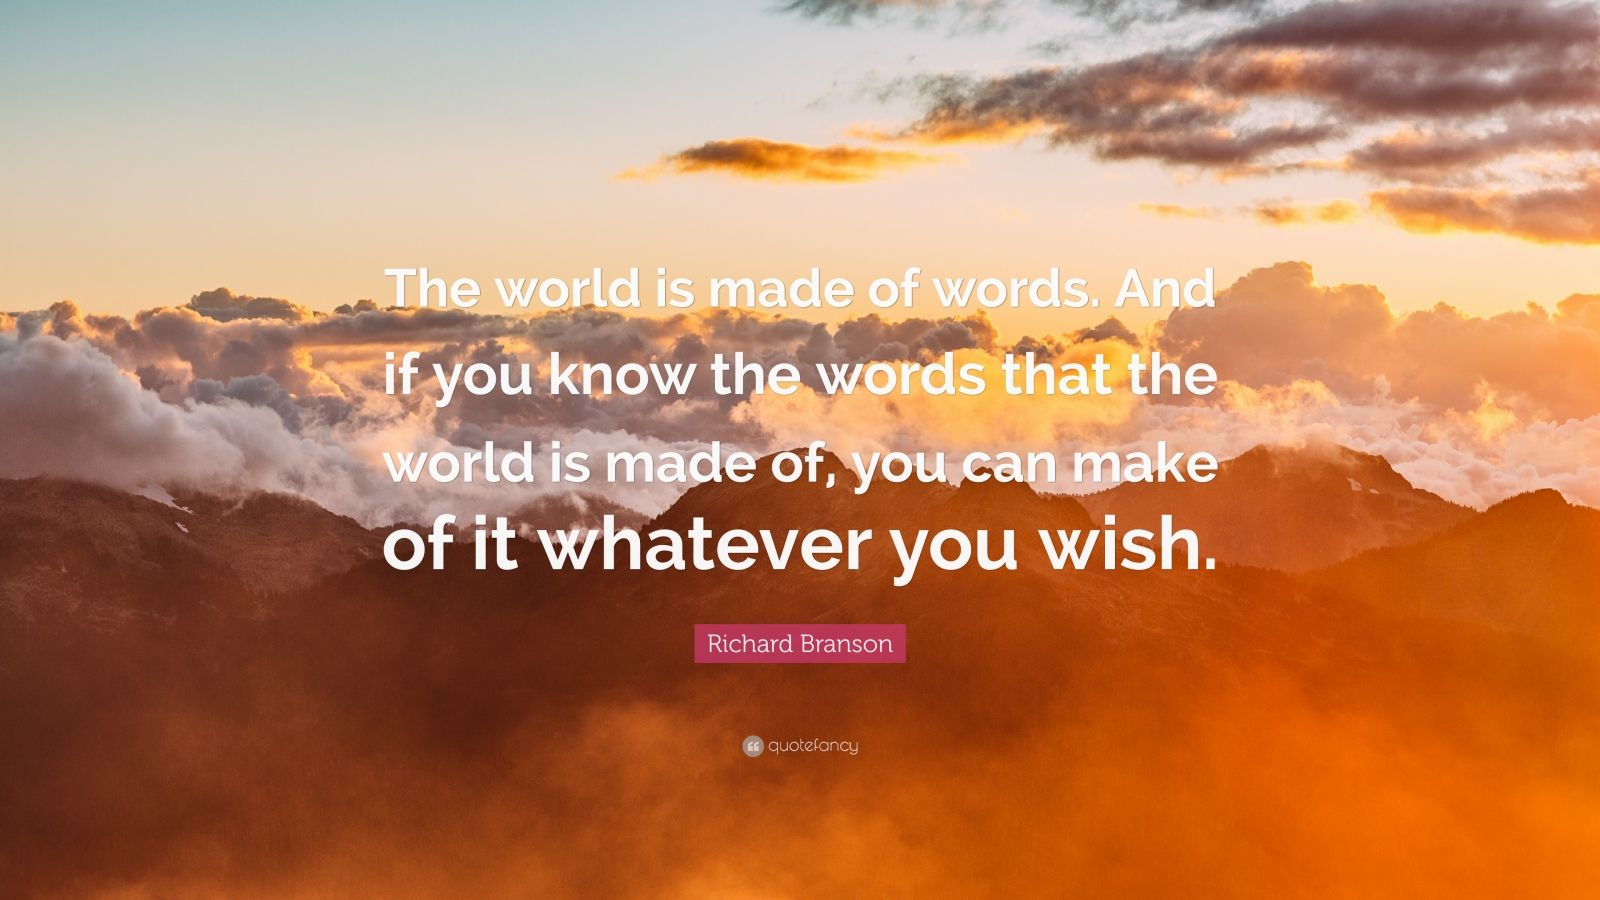 """Richard Branson Quote: """"The world is made of words. And if you know the words that the world is made of, you can make of it whatever you wish."""""""